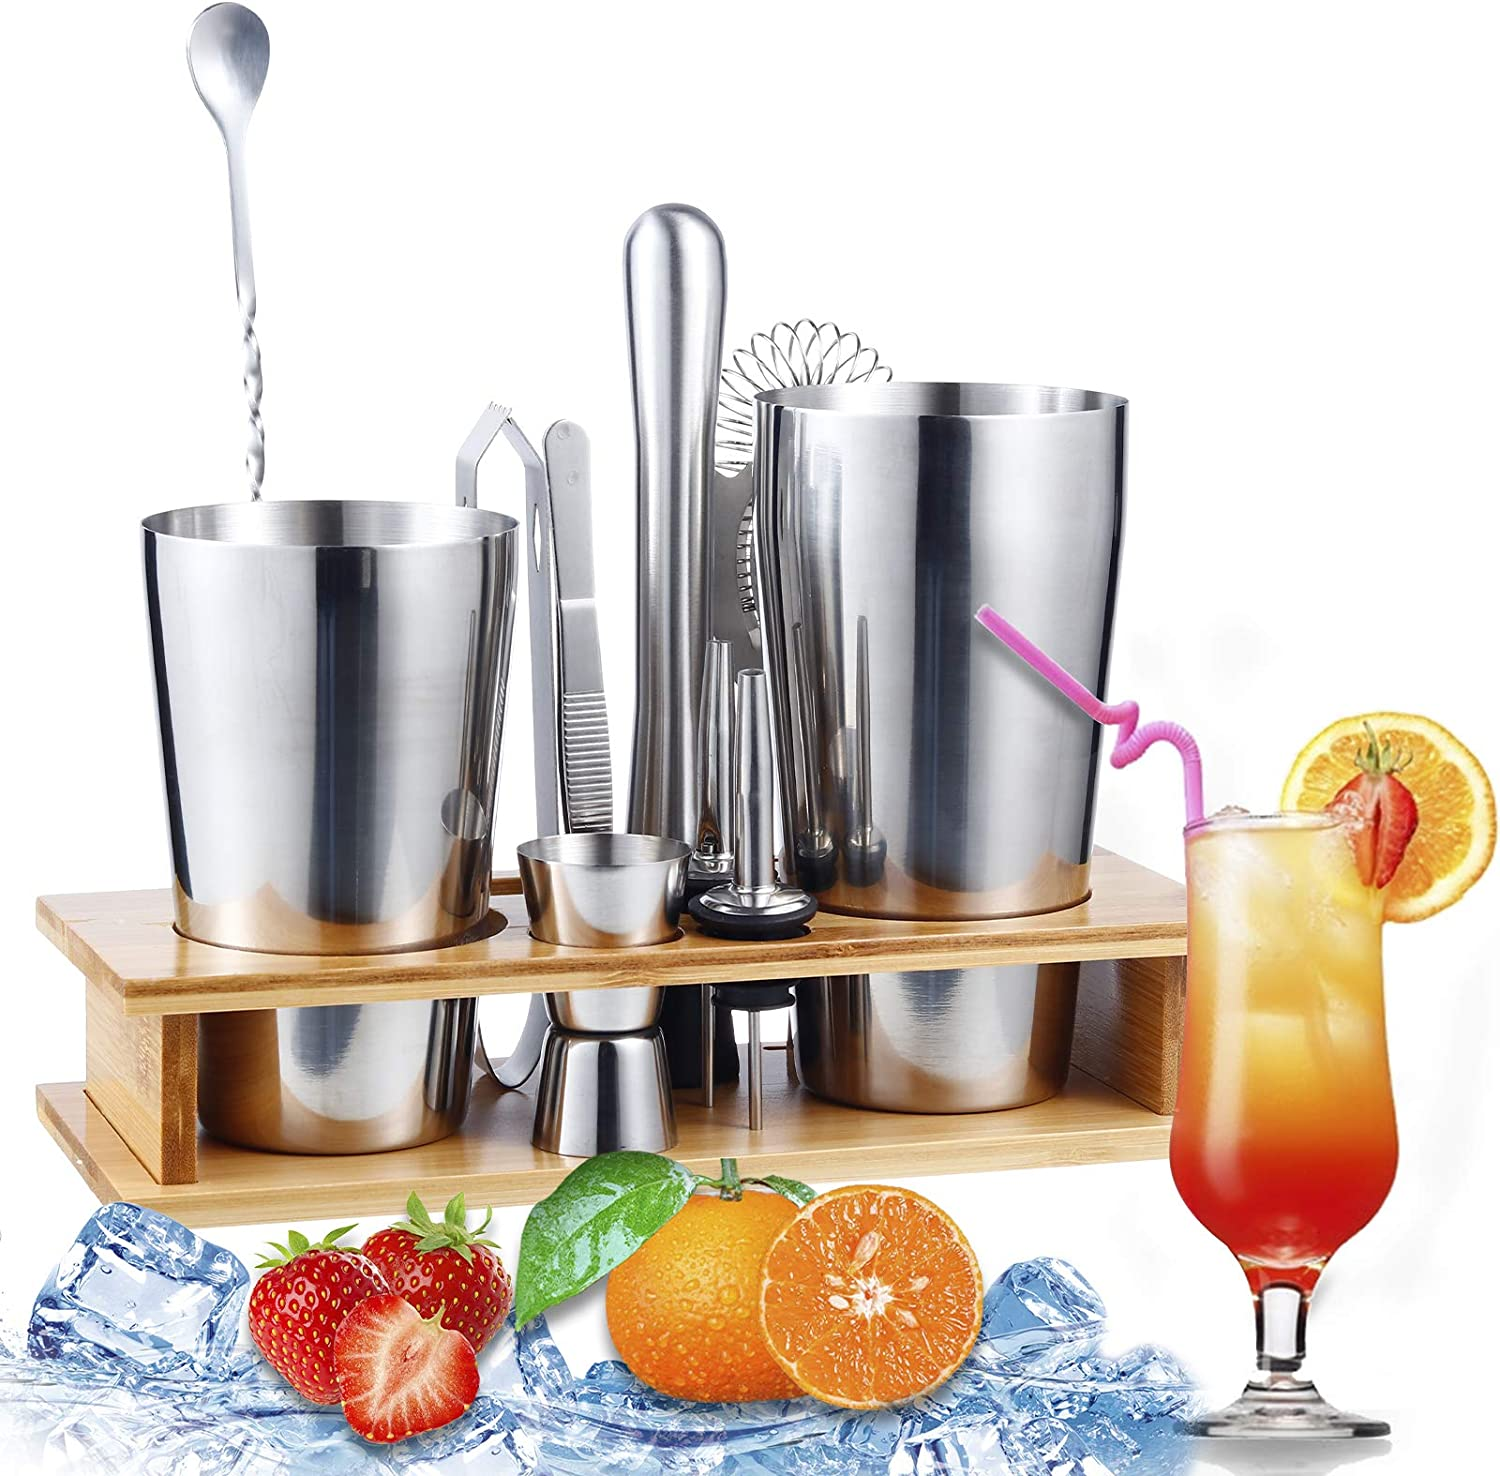 11pcs CocktailShakerSetBartenderKit with Stand,Perfect Home Bar Kit Have Cocktail Shaker, Muddler, Jigger, Strainer, & Recipes, and More